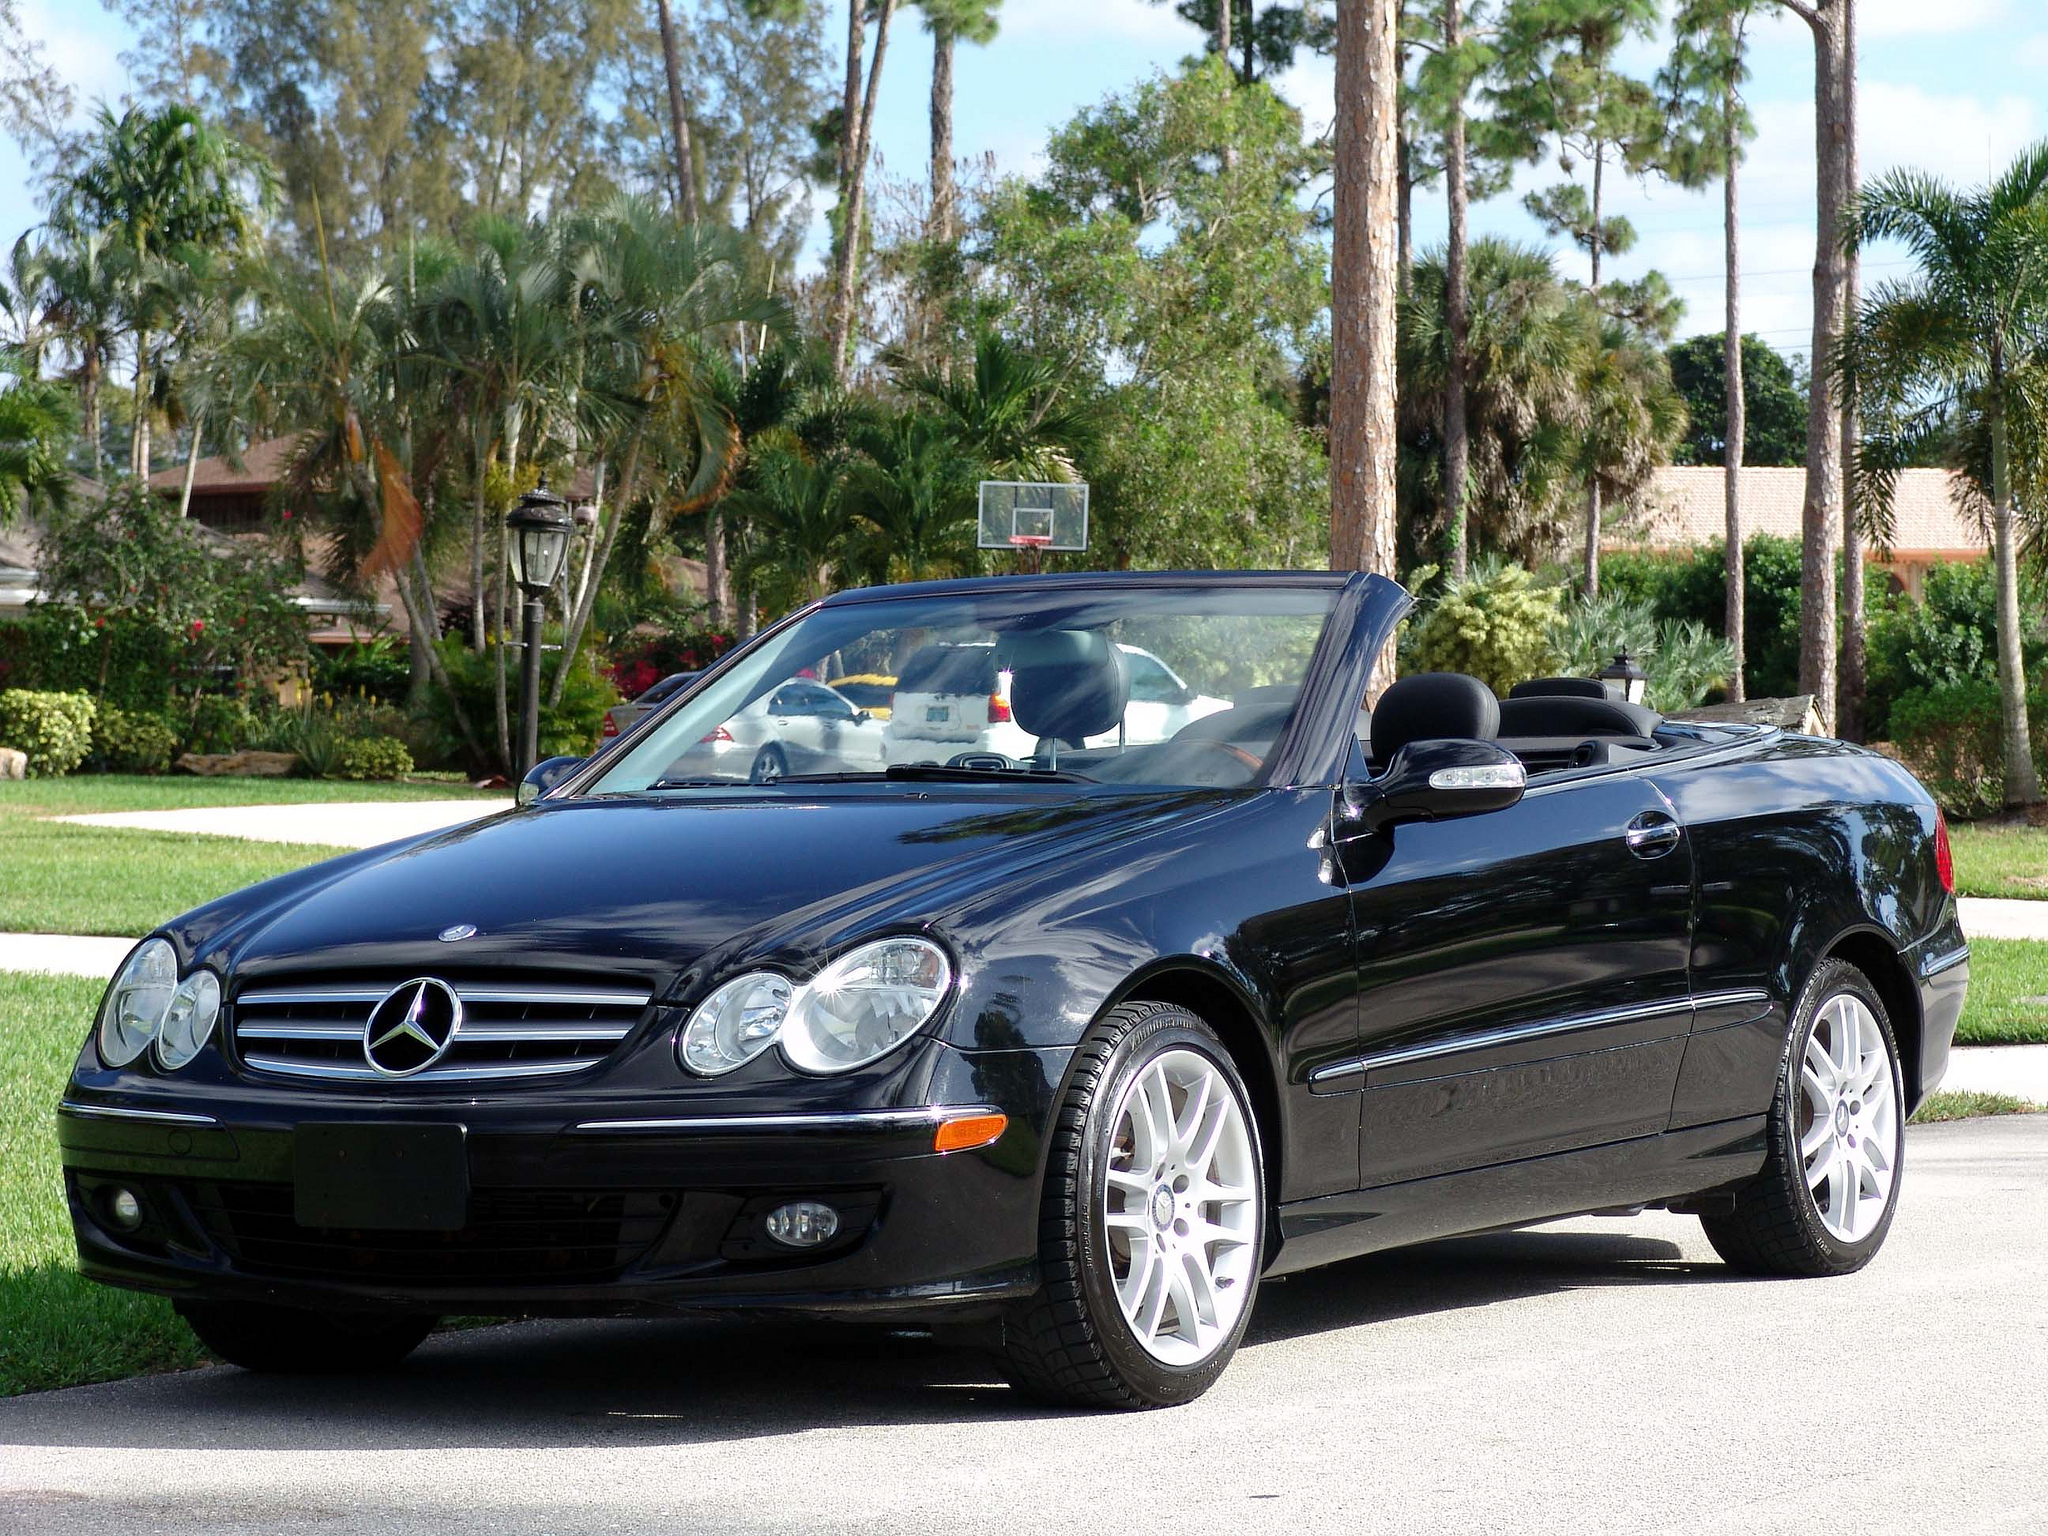 Mercedes Benz CLK #1